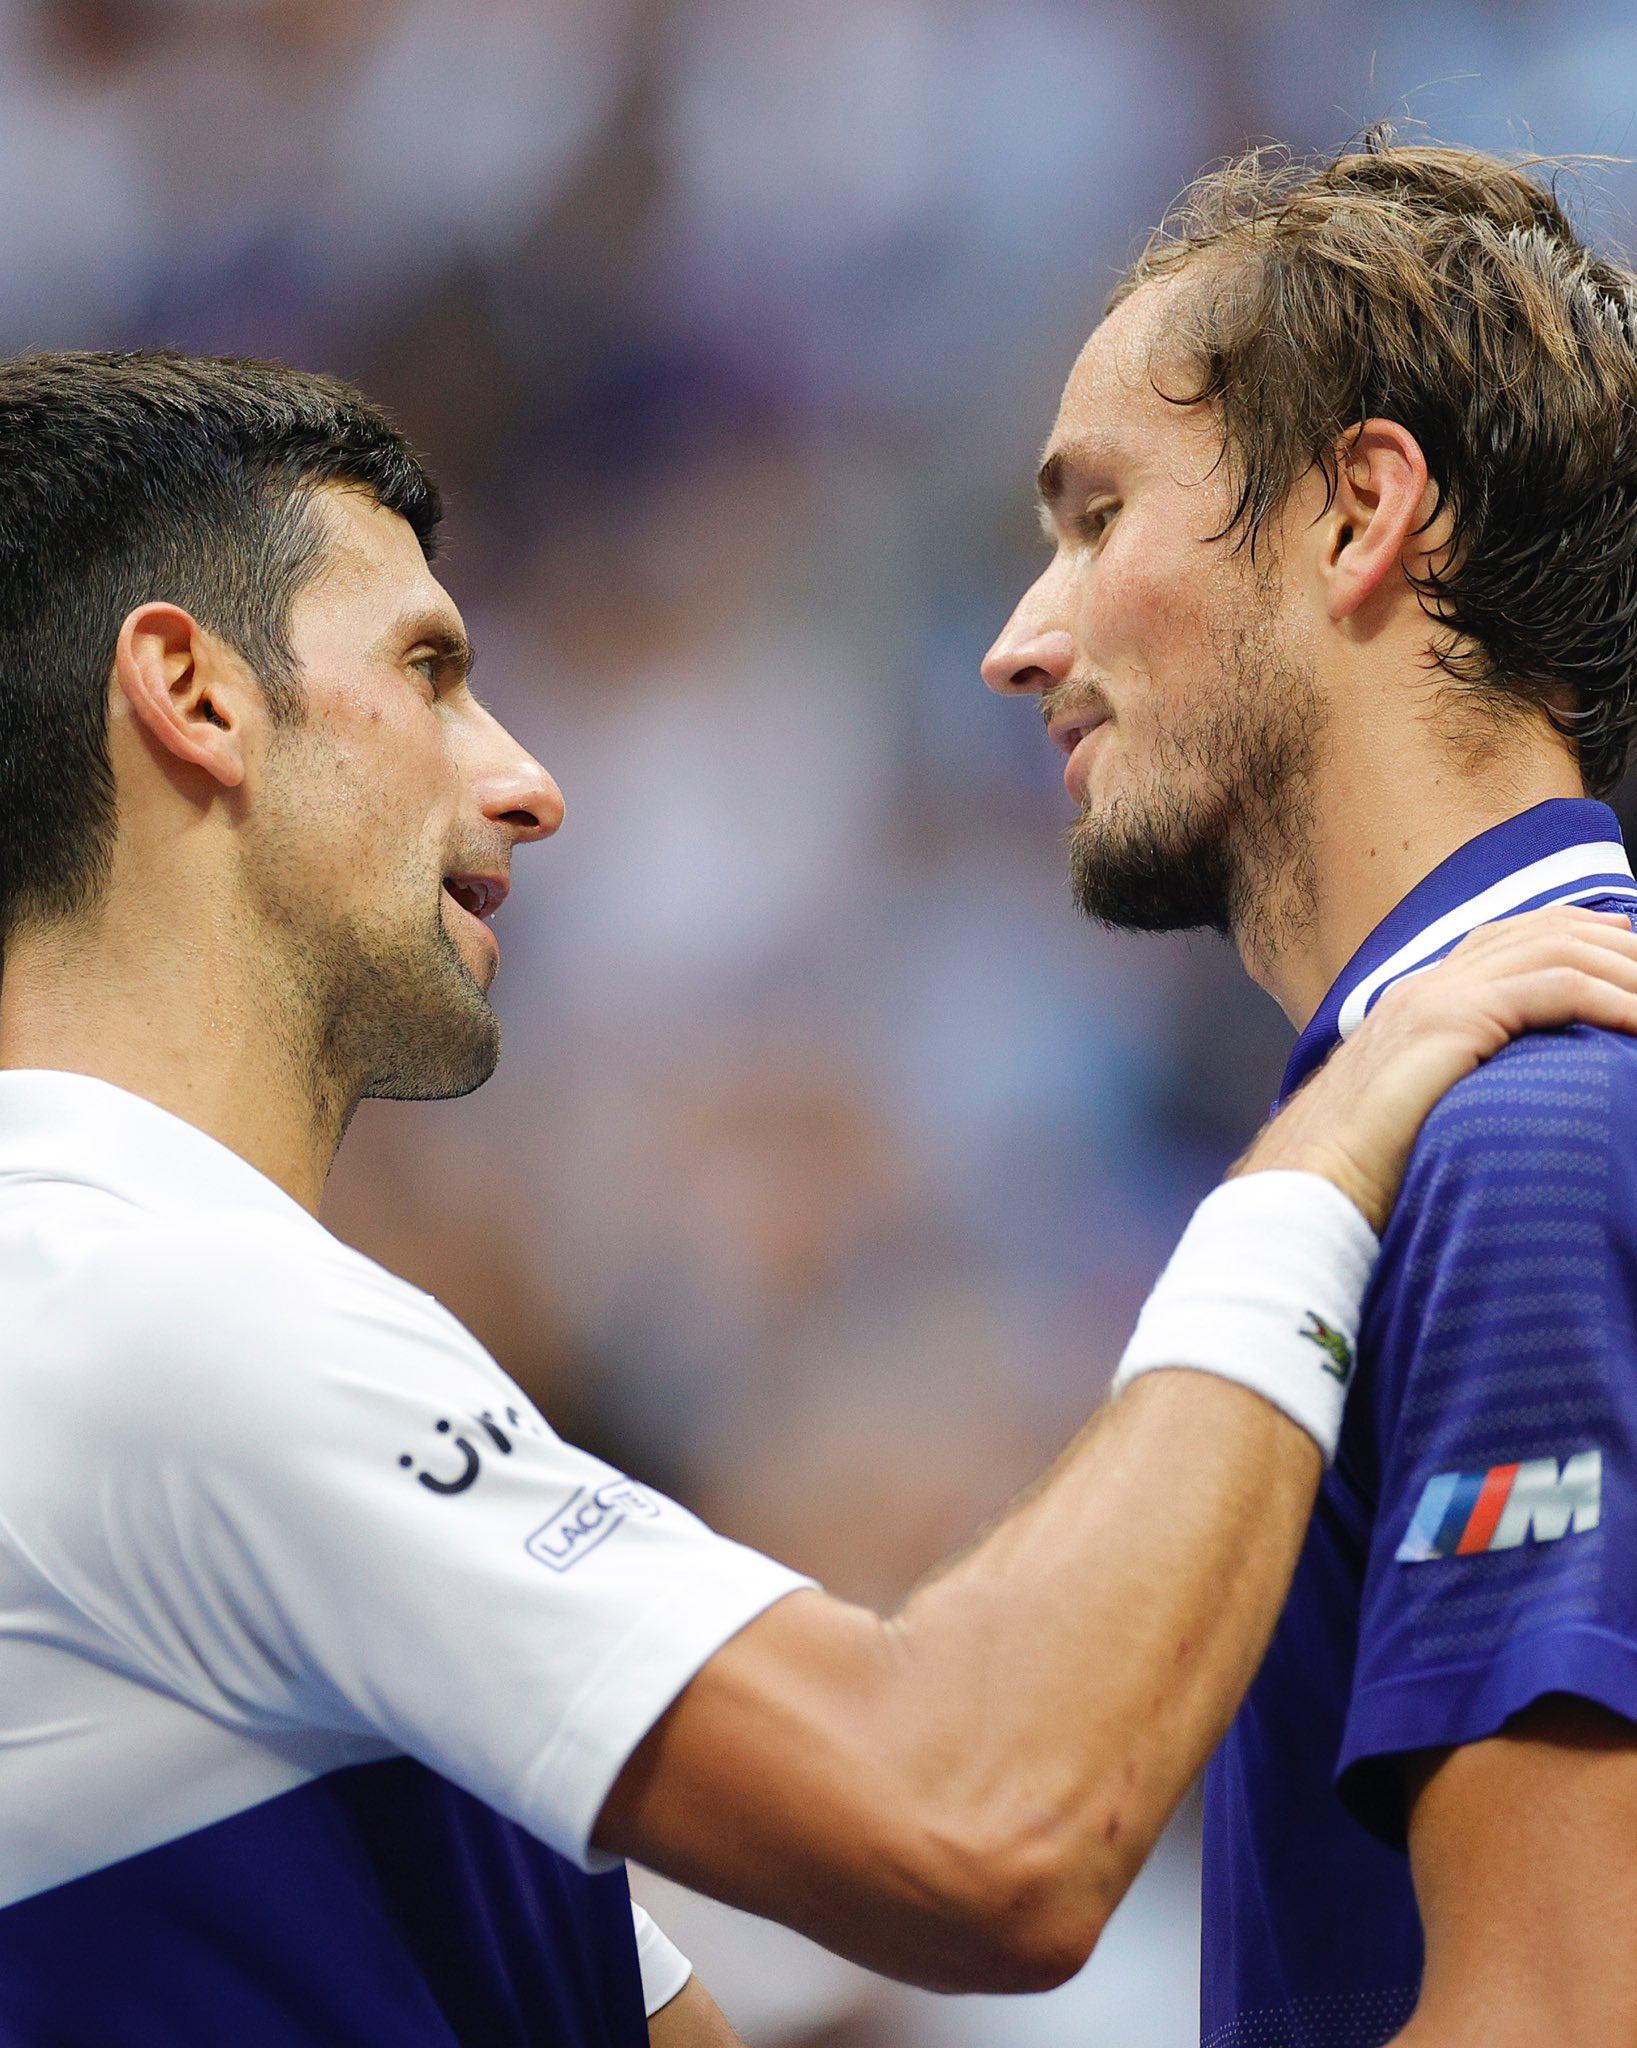 Daniil Medvedev (R) of Russia and Novak Djokovic (L) of Serbia talk at center court after Medvedev won their Men's Singles final match on Day Fourteen of the 2021 US Open at the USTA Billie Jean King National Tennis Center on September 12, 2021 in the Flushing neighborhood of the Queens borough of New York City.